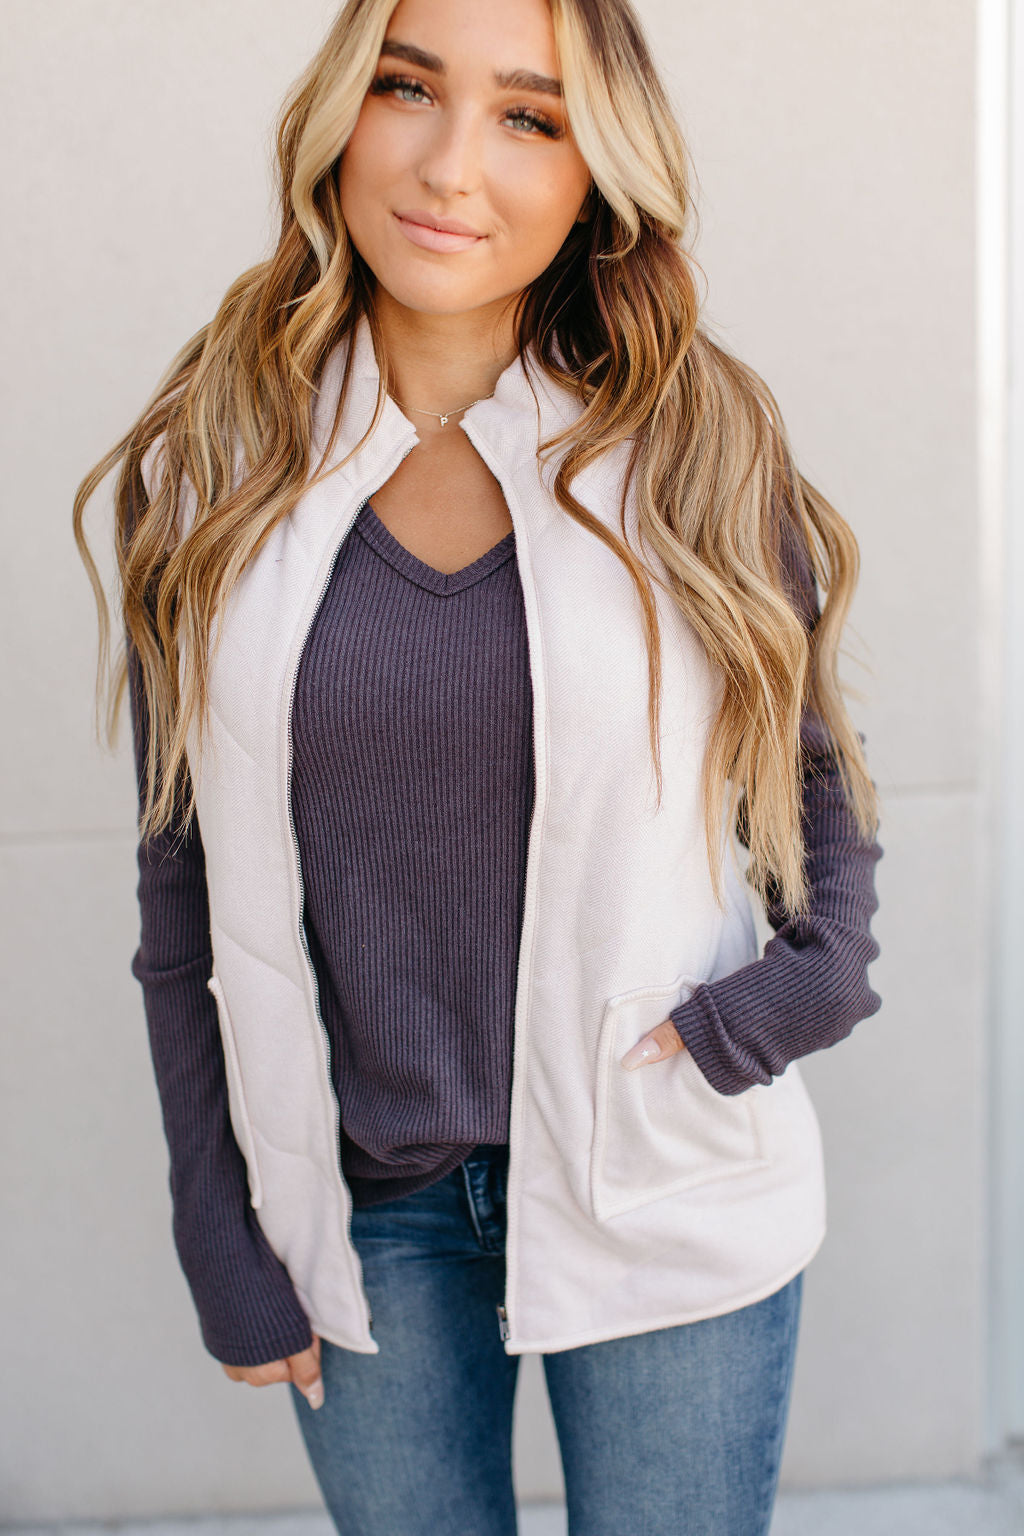 Ampersand Herringbone Vest - Blush